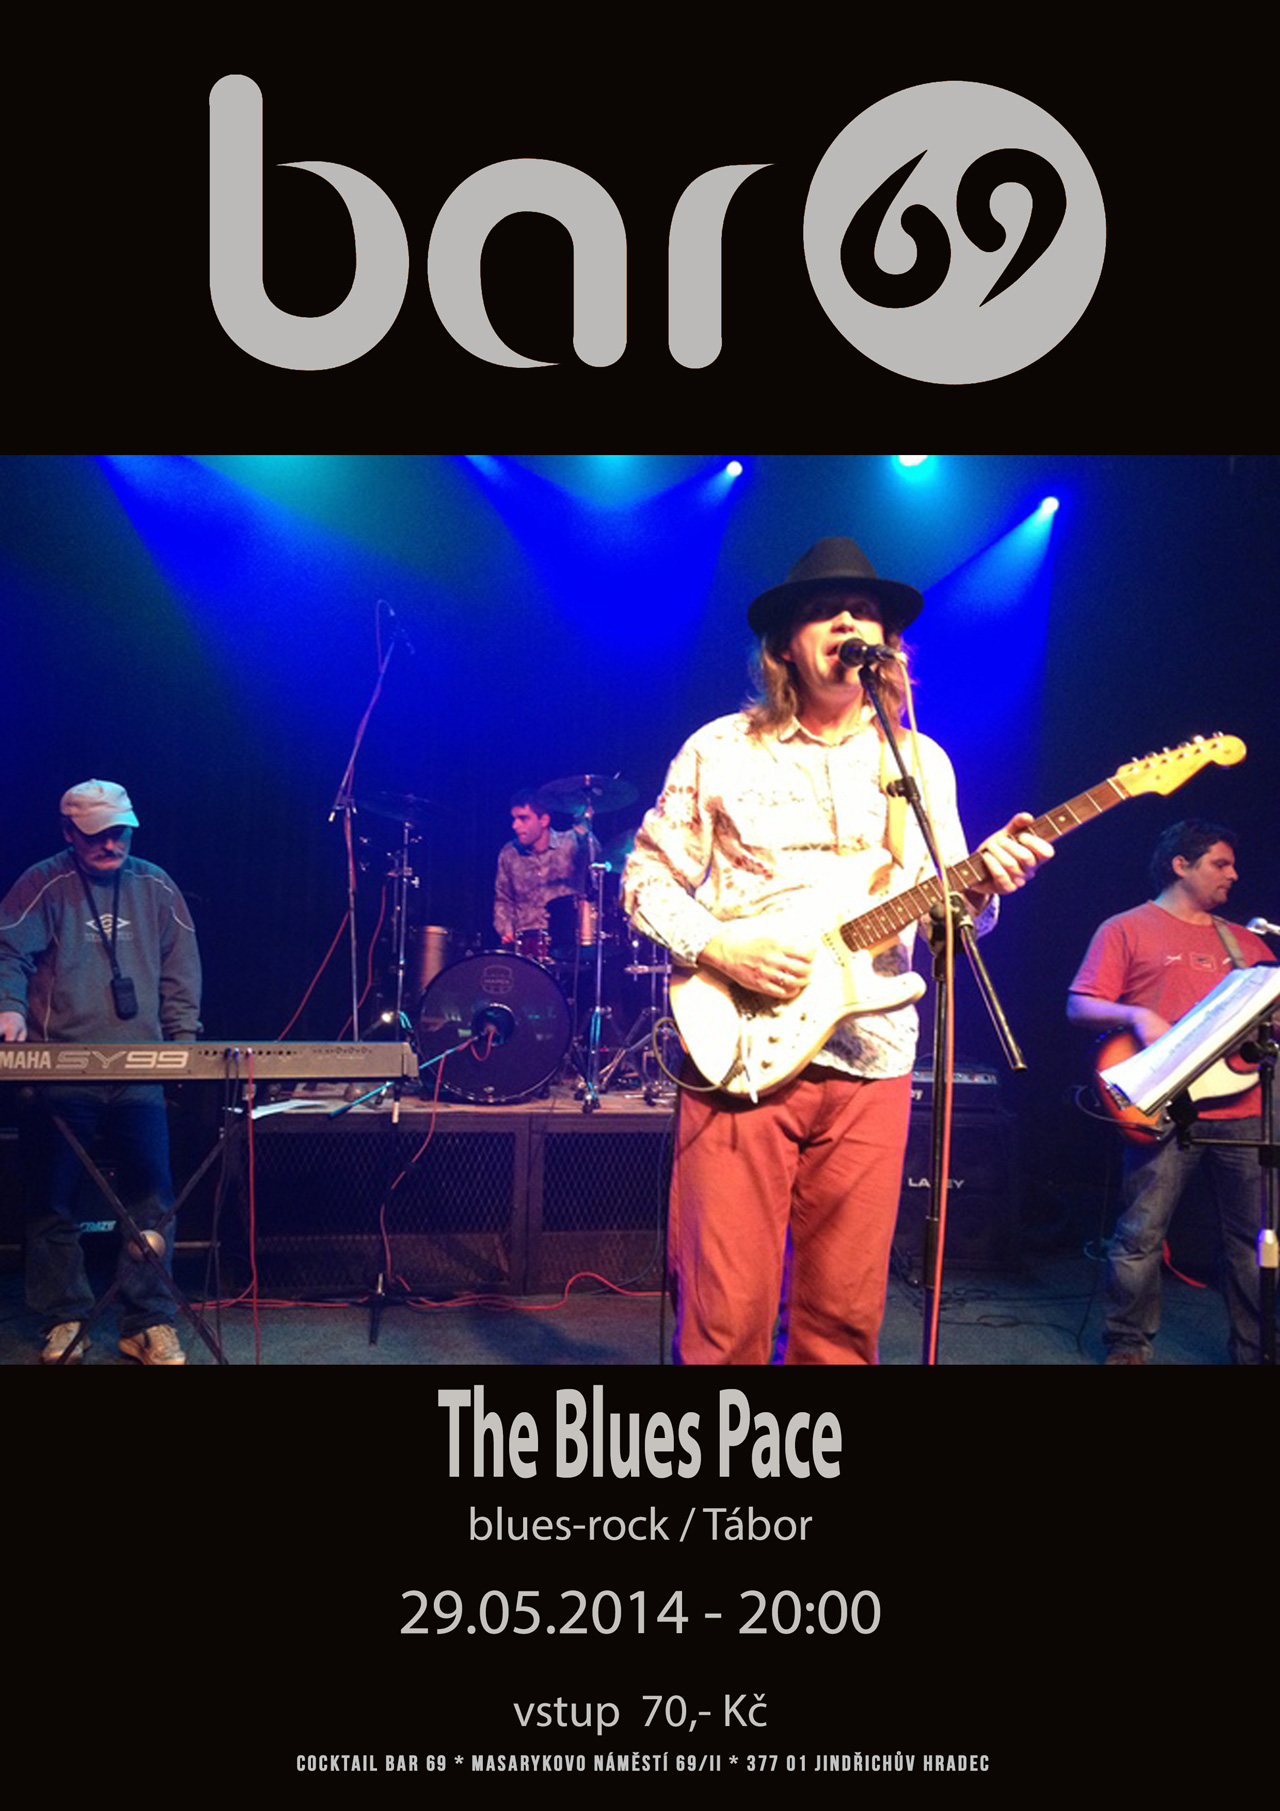 The Blues Pace